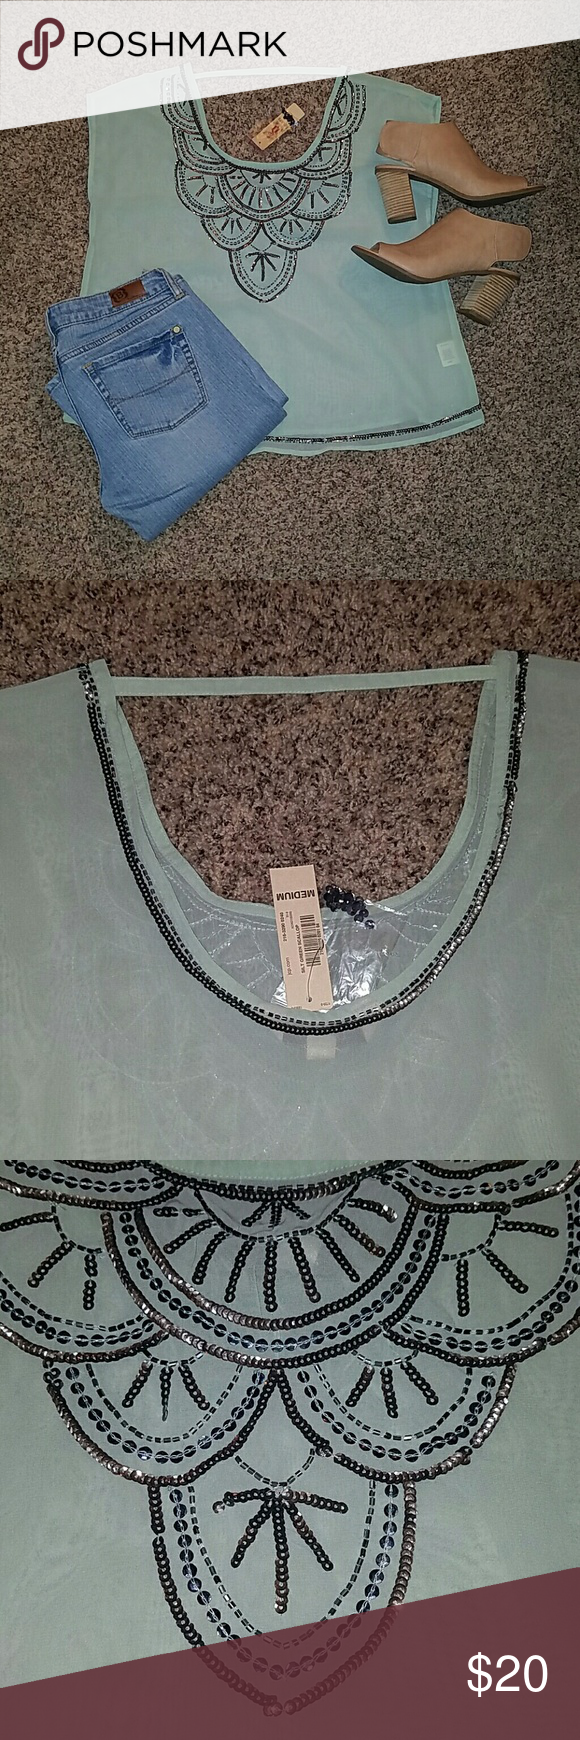 Brand new mint green top! Beautiful beaded mint green top.  New with tags. All items shown are for sale :) Tops Blouses